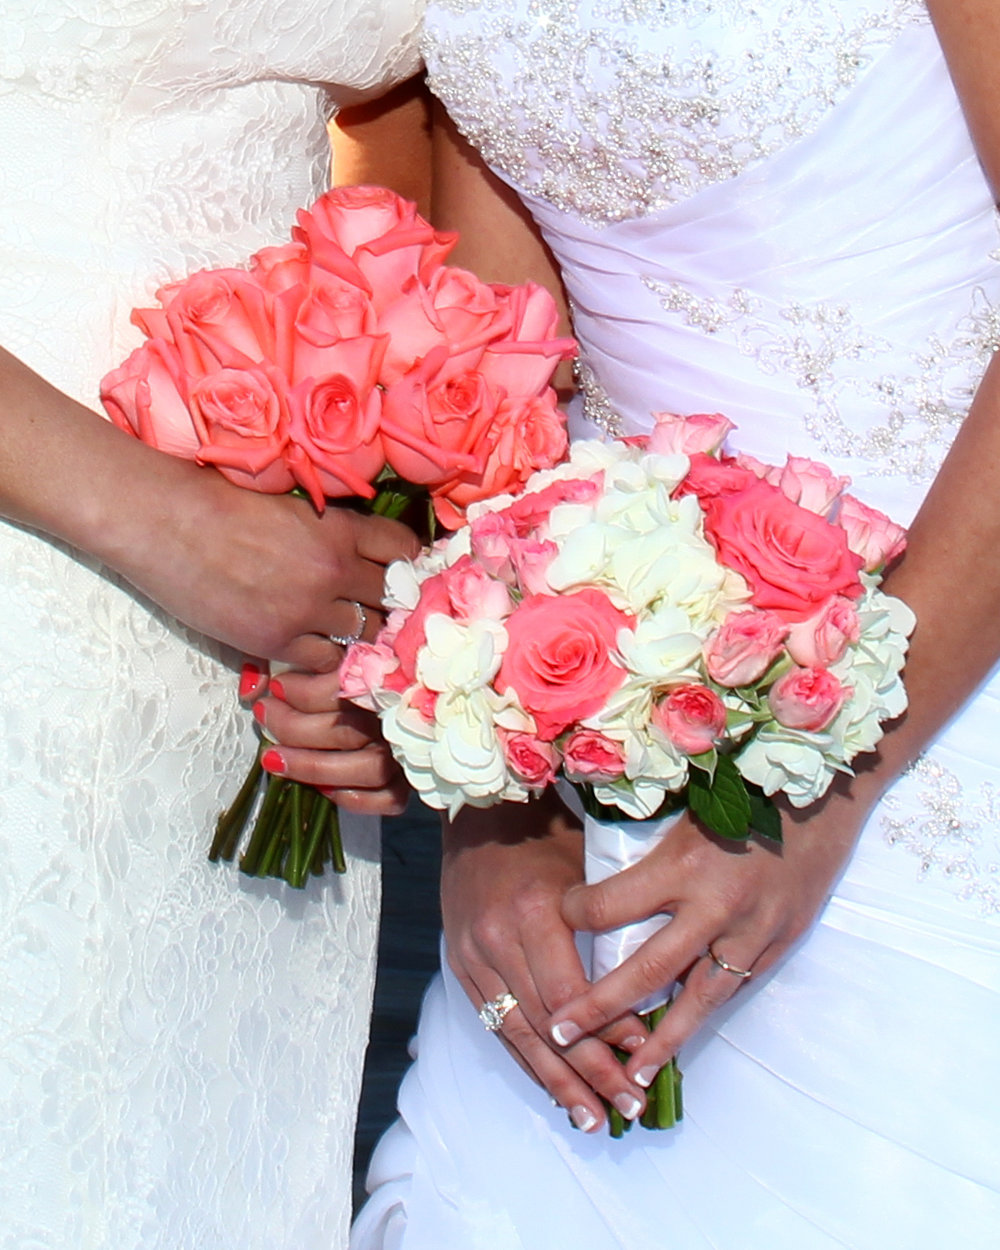 Coral rose bride's bouquet